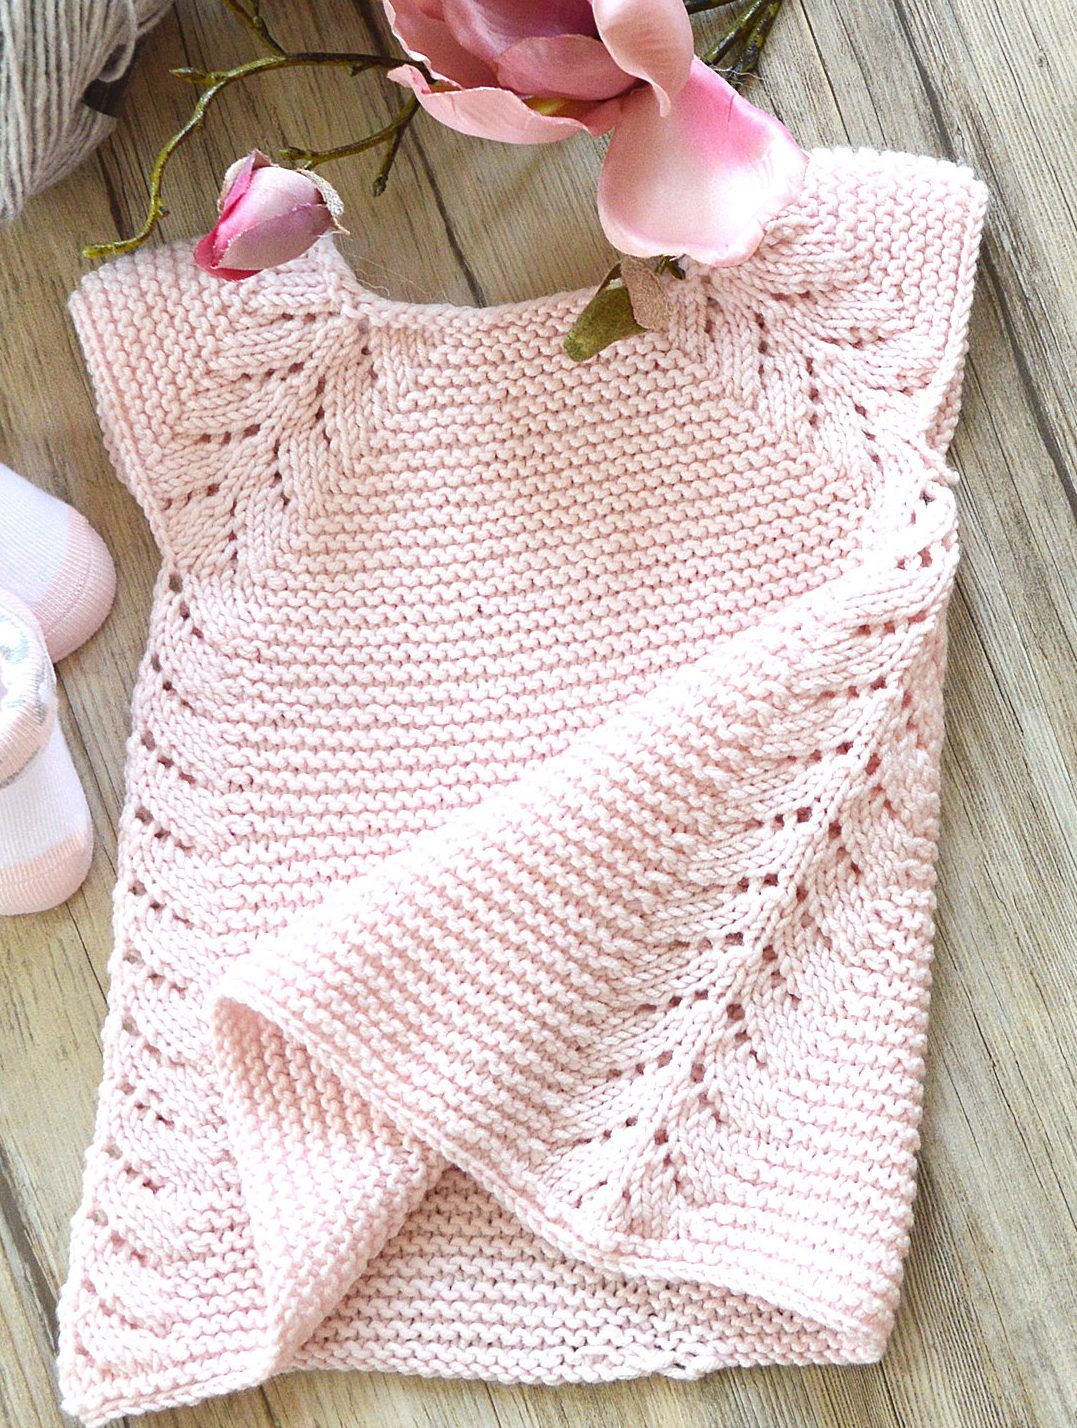 Dresses and skirts for children knitting patterns knitting dresses and skirts for children knitting patterns bankloansurffo Images